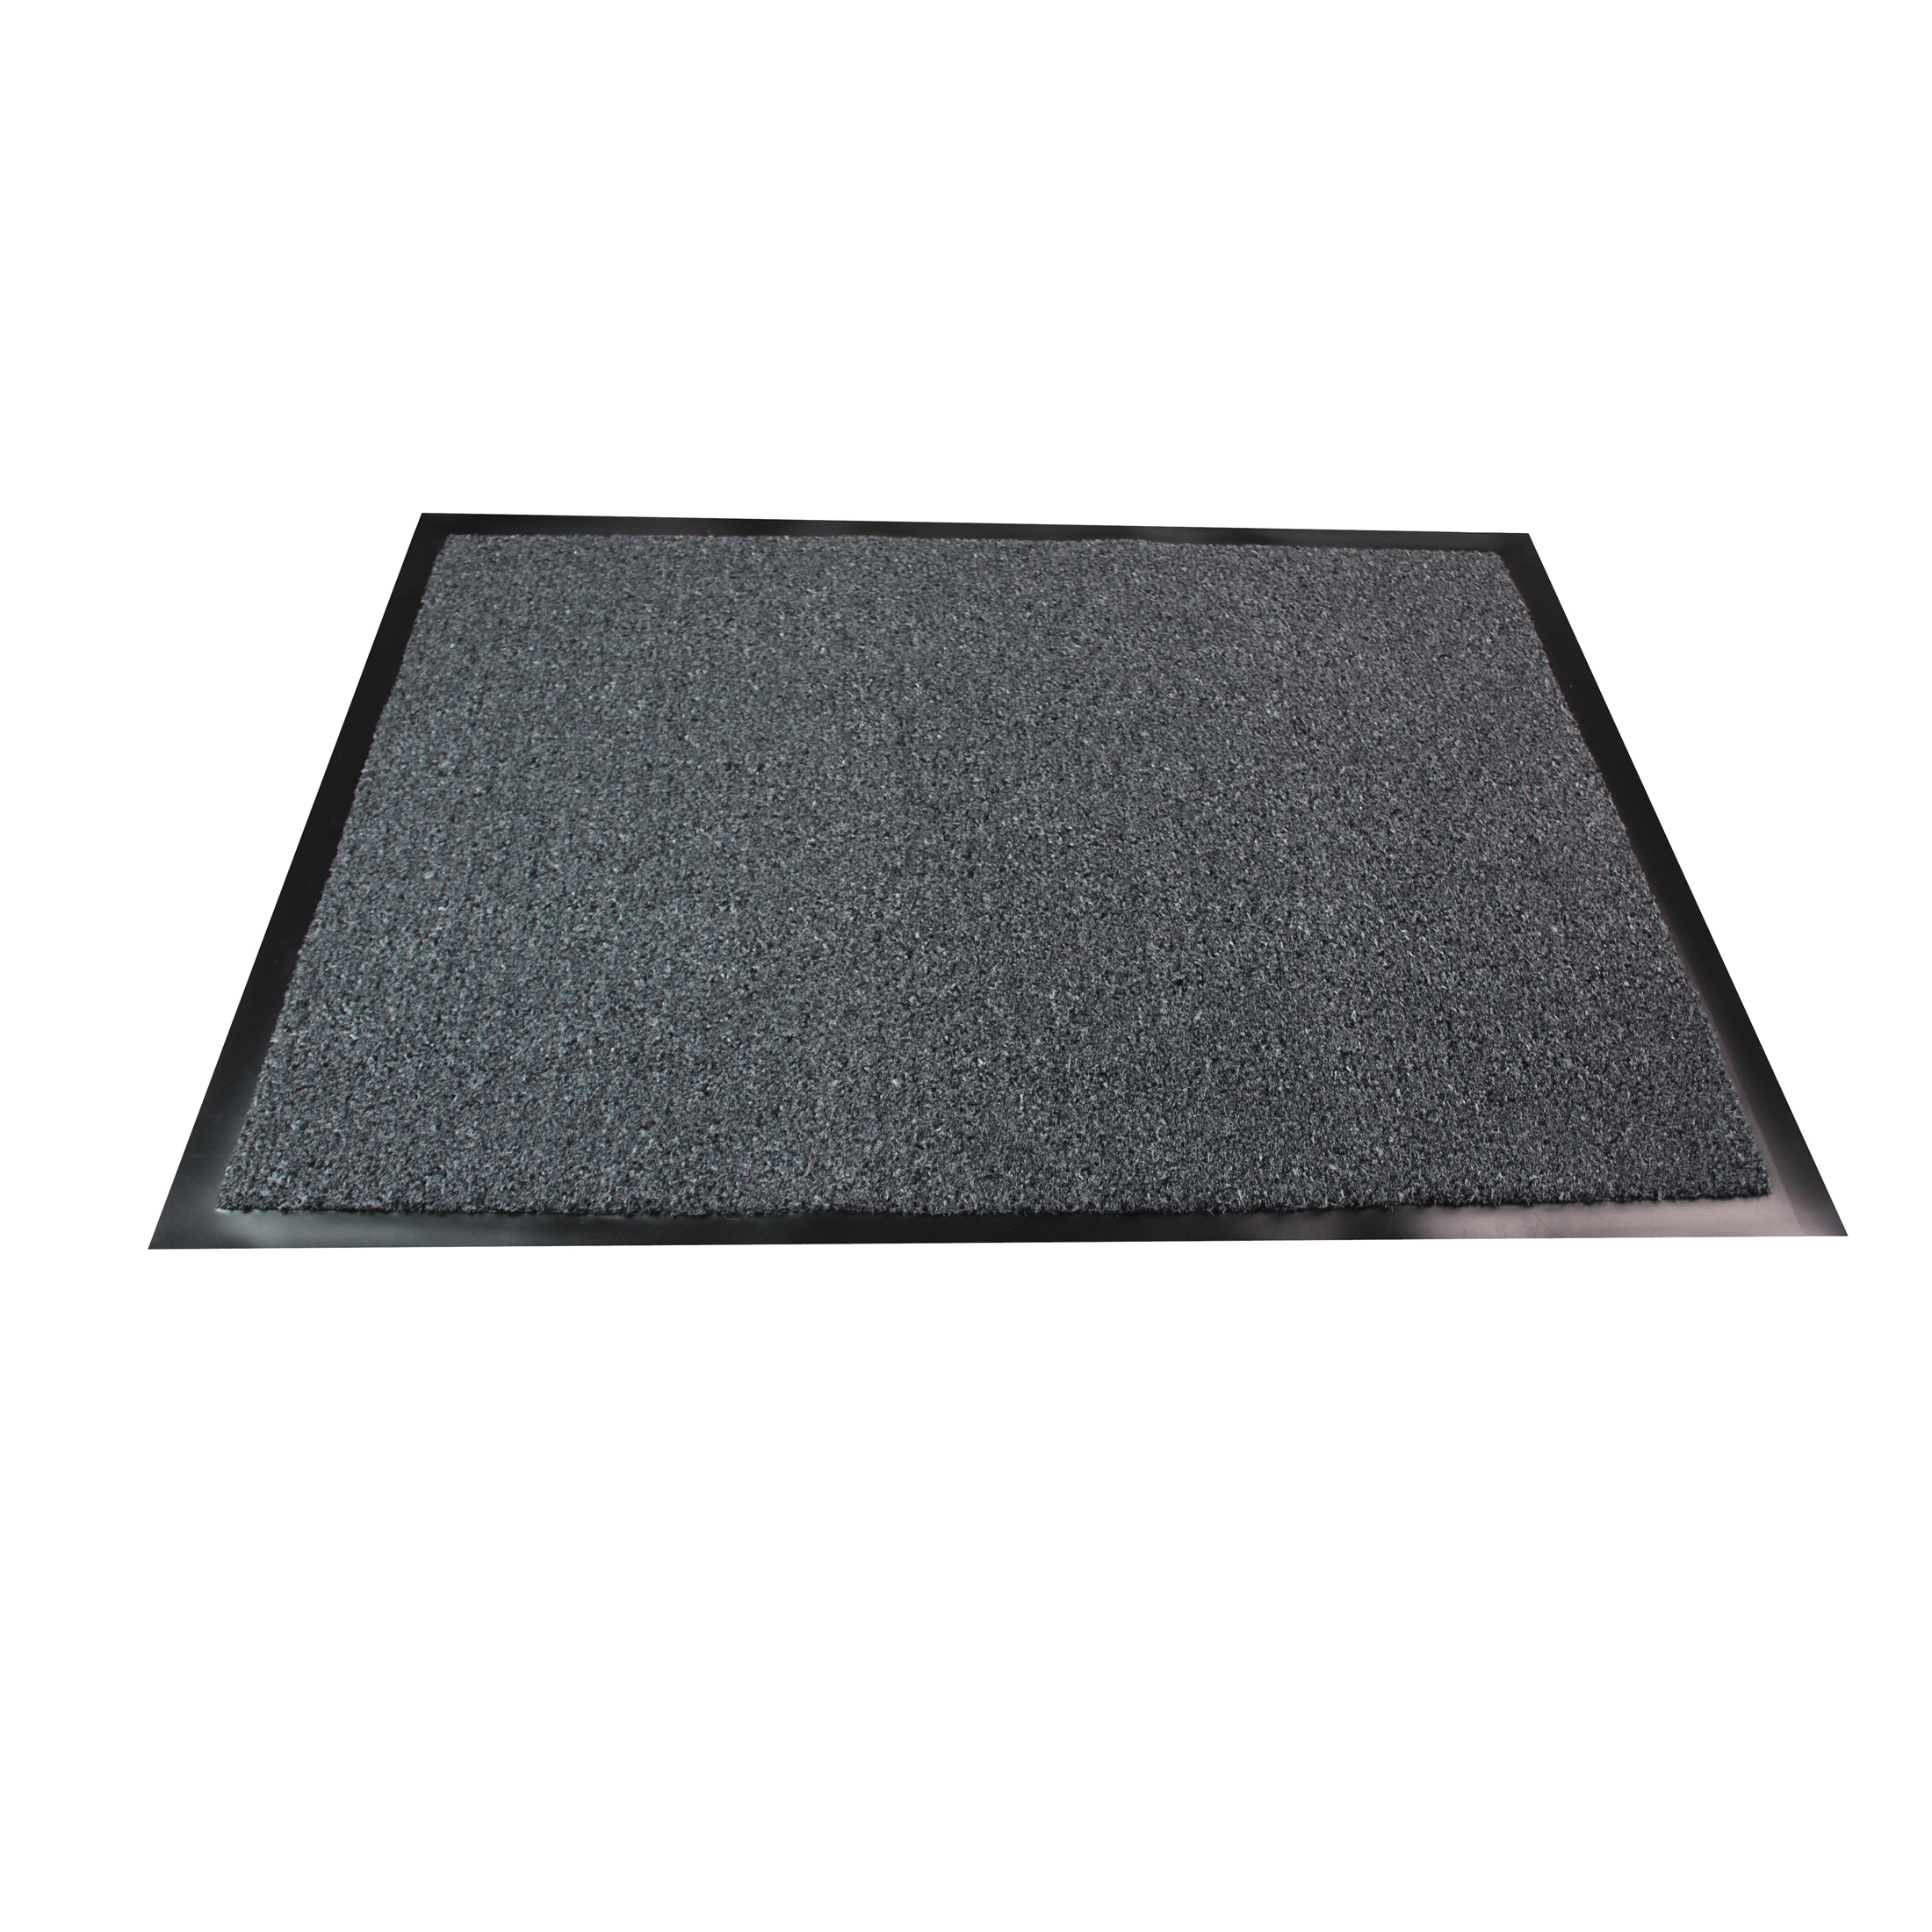 Door mats Doortex Valuemat Entrance Mat Indoor Use Hard Wearing 800x1200mm Grey Ref FC480120VALGR